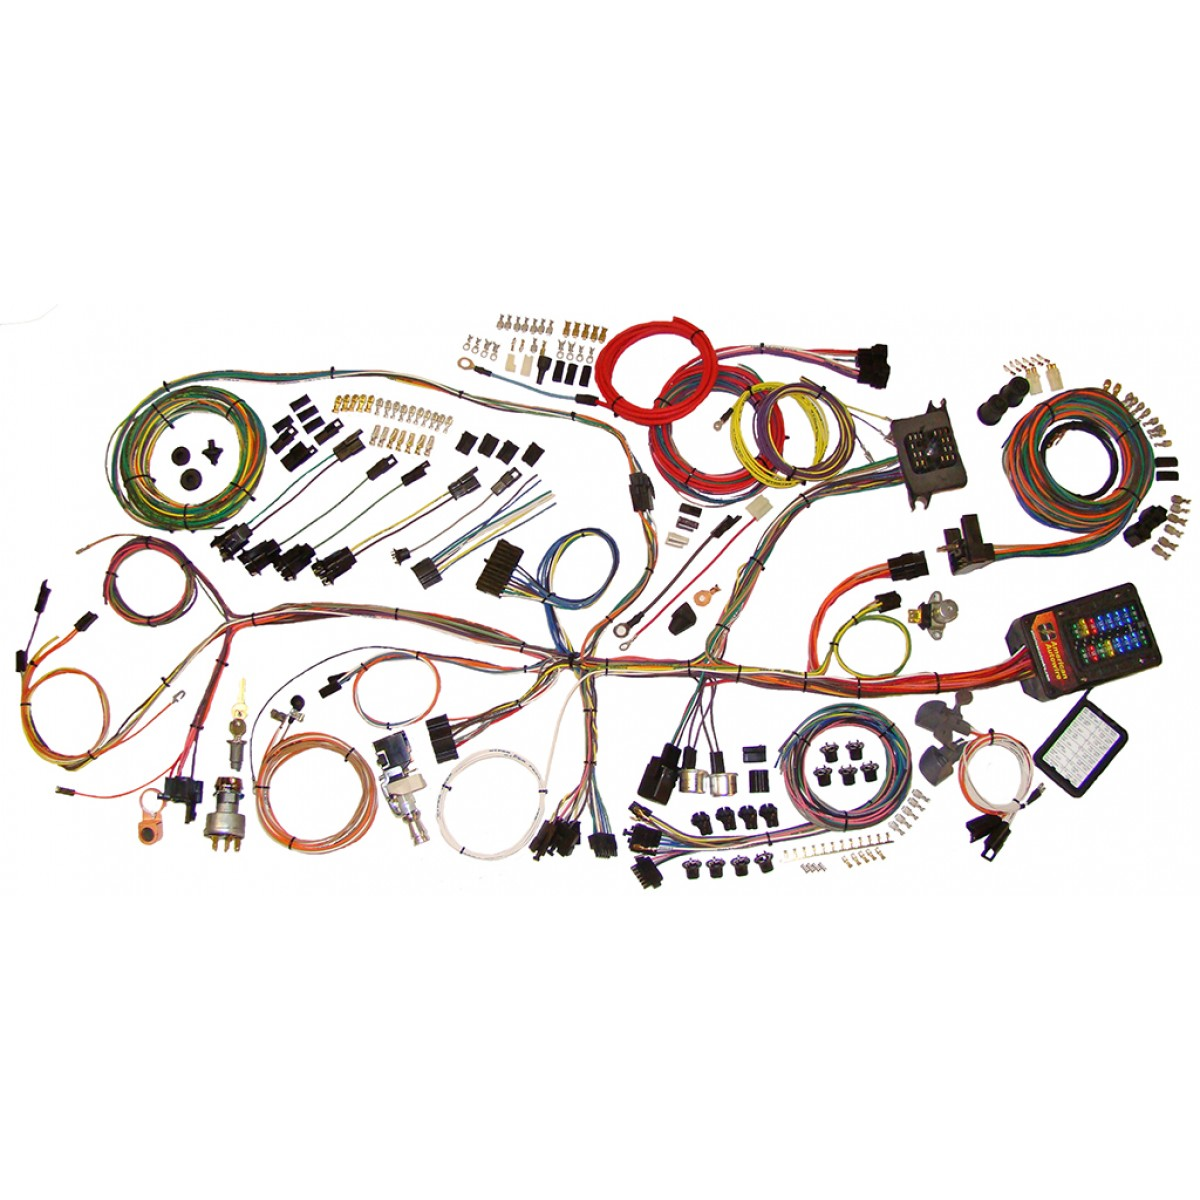 1962-1967 Nova wiring harness - Complete Wiring Harness Kit - 1962